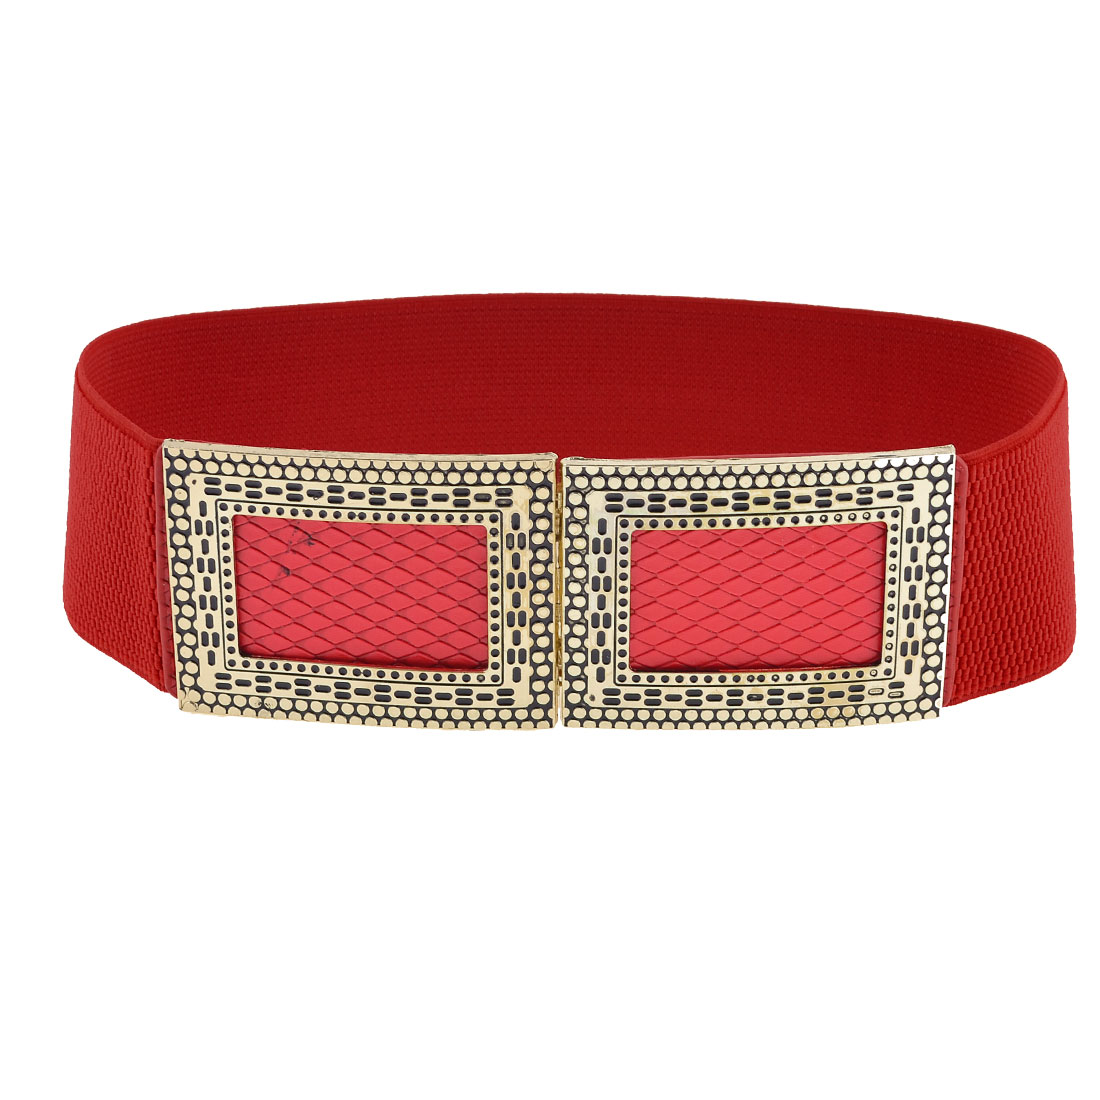 Red Snake Print Metal Hidden Interlocking Buckle Waist Belt for Ladies